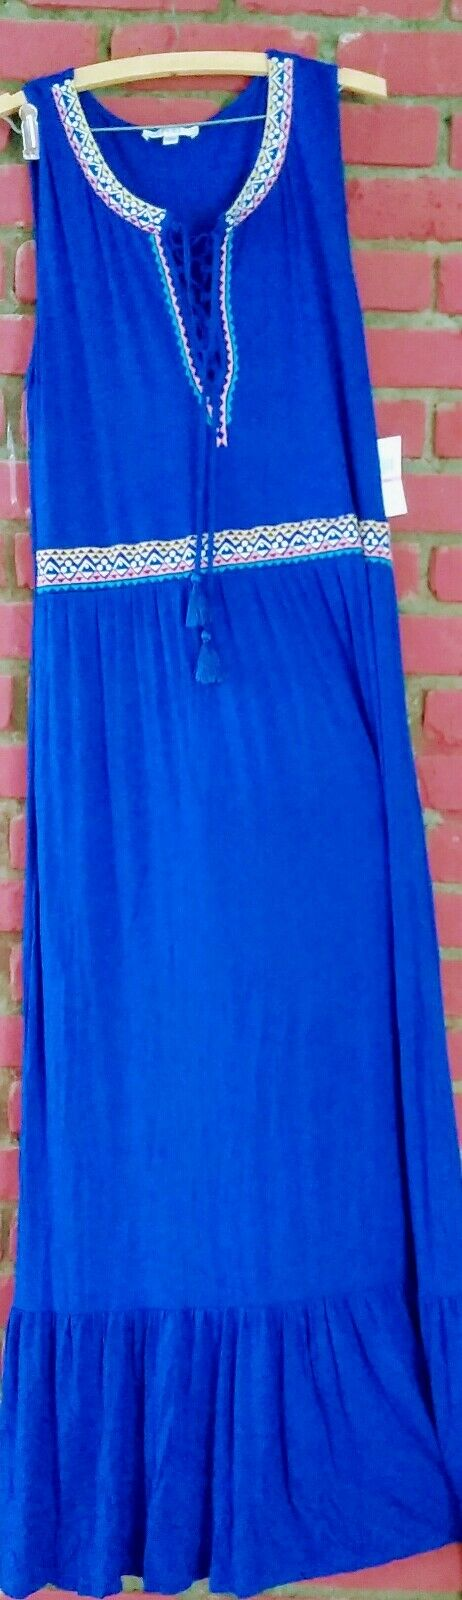 Spense Dress Angelfish bluee Sleeveless Size XXL New with tags